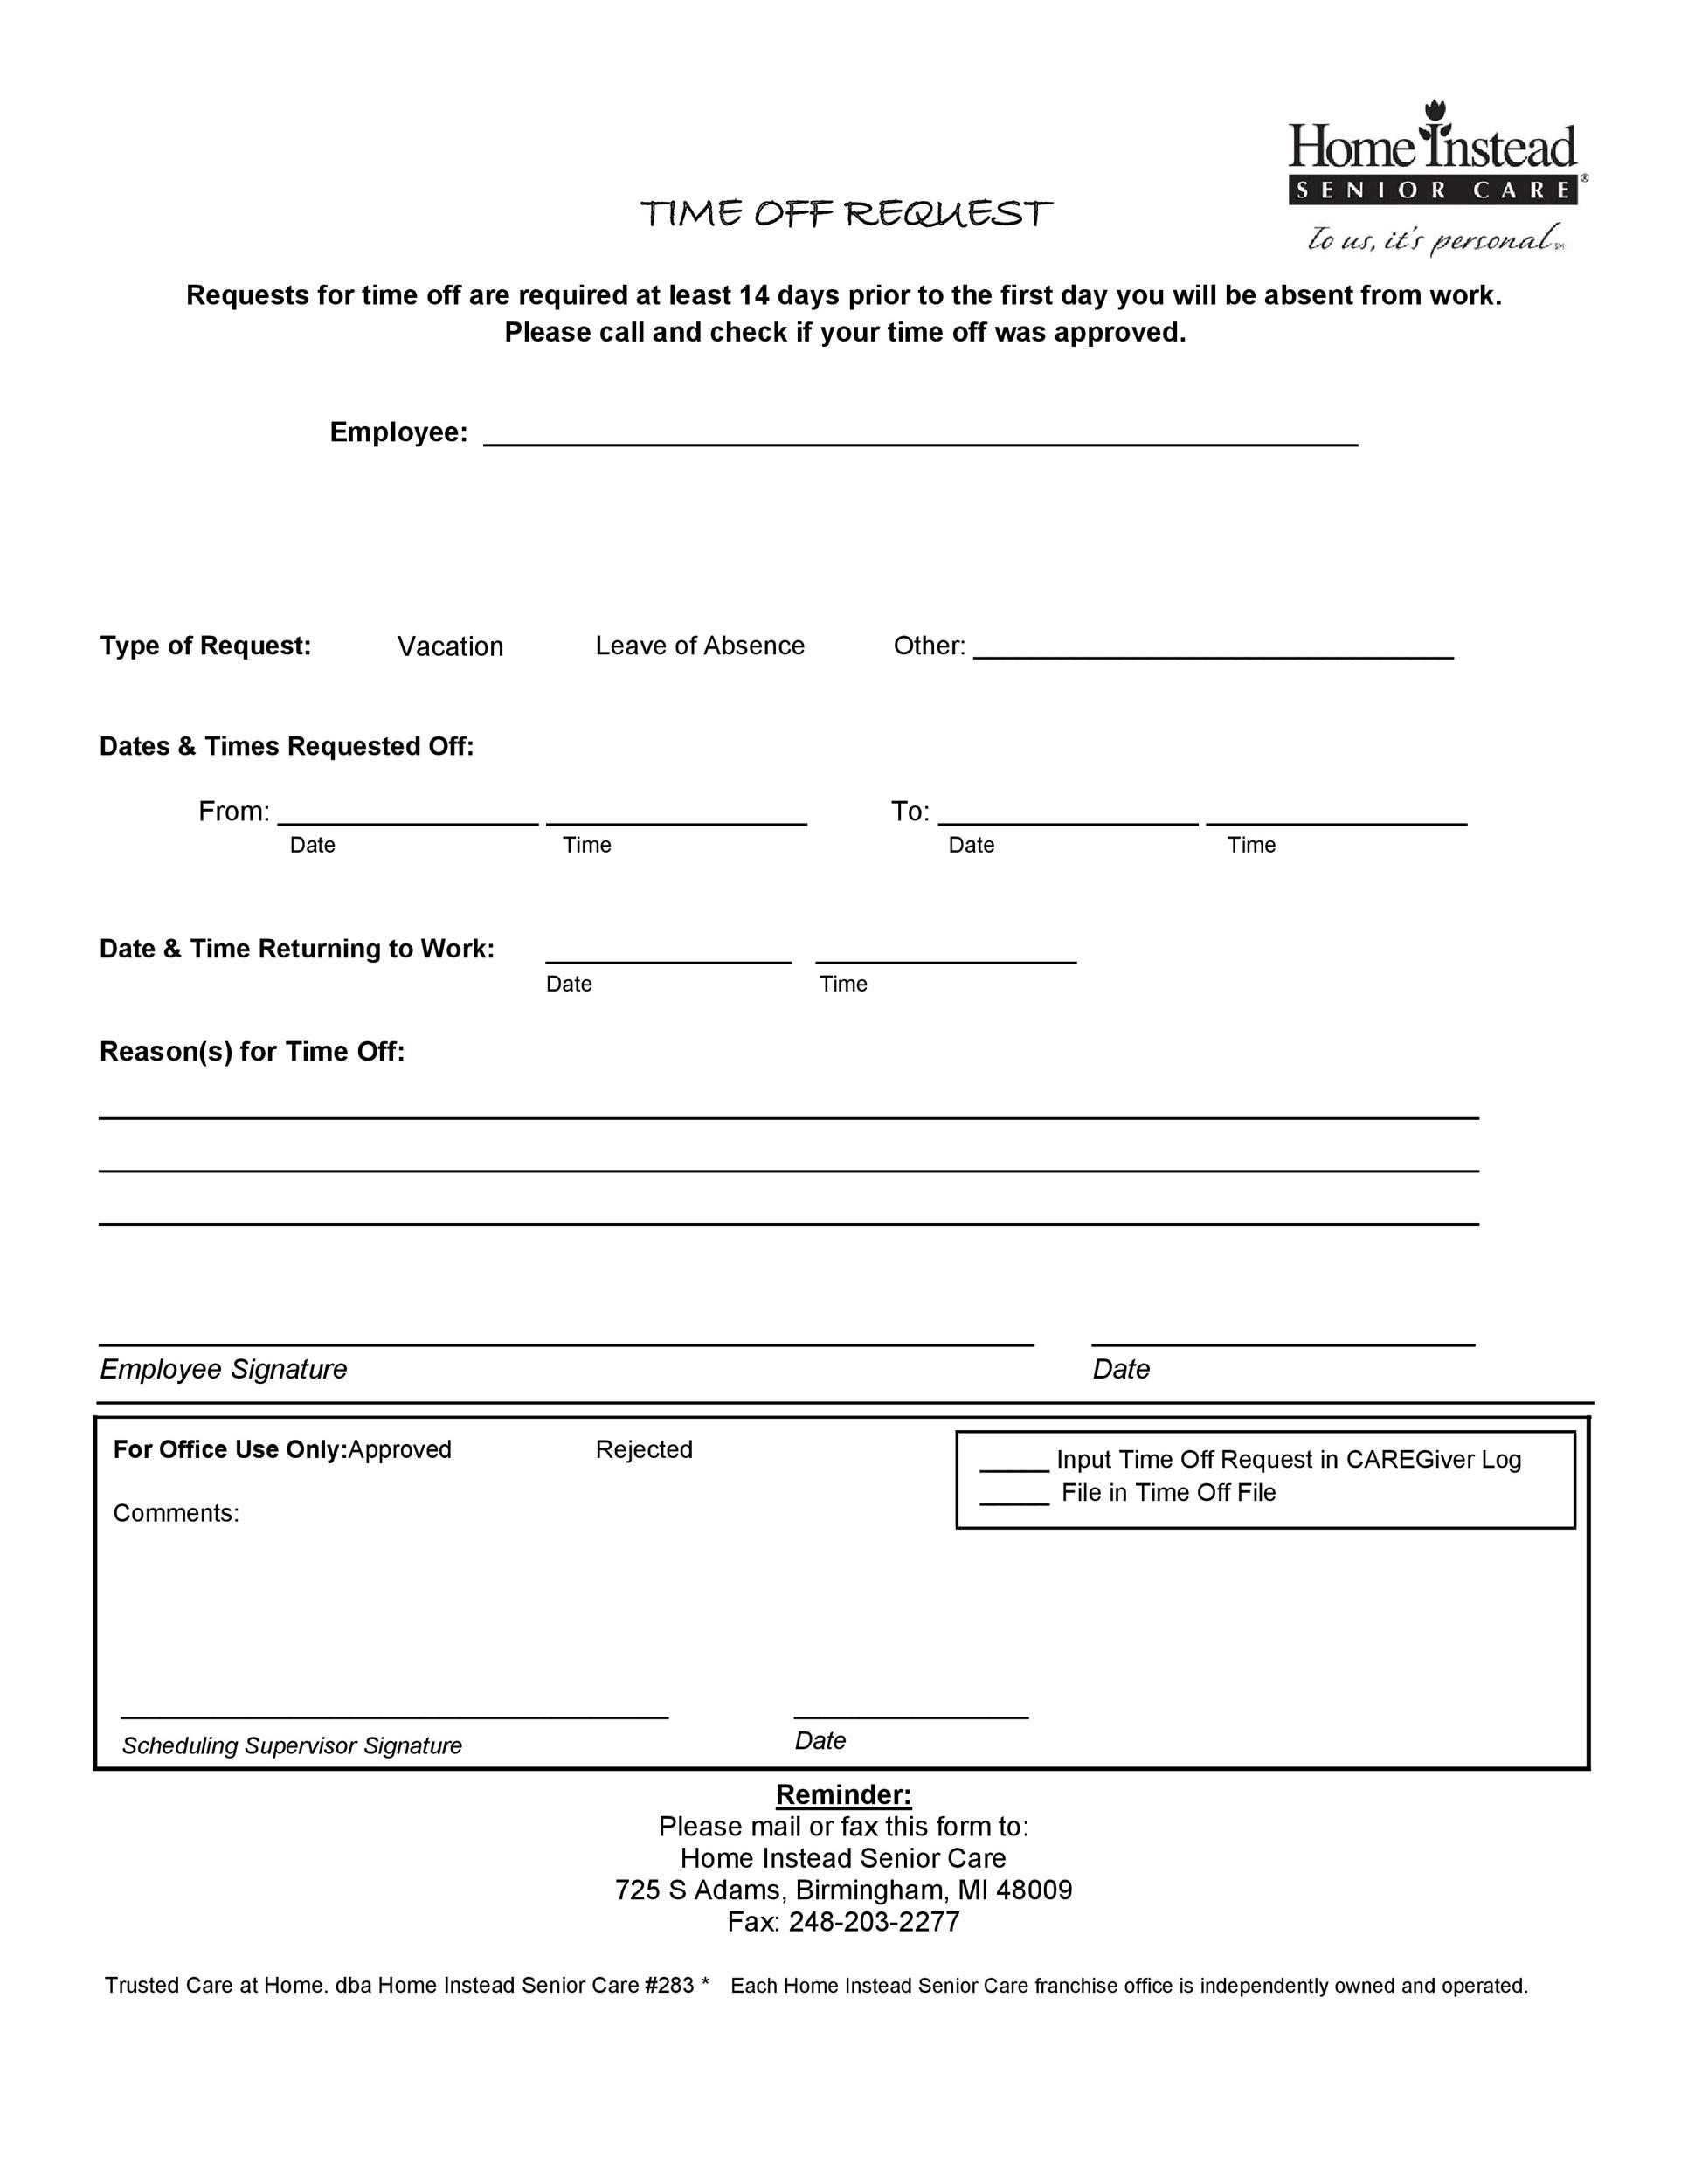 Free time off request form template 23